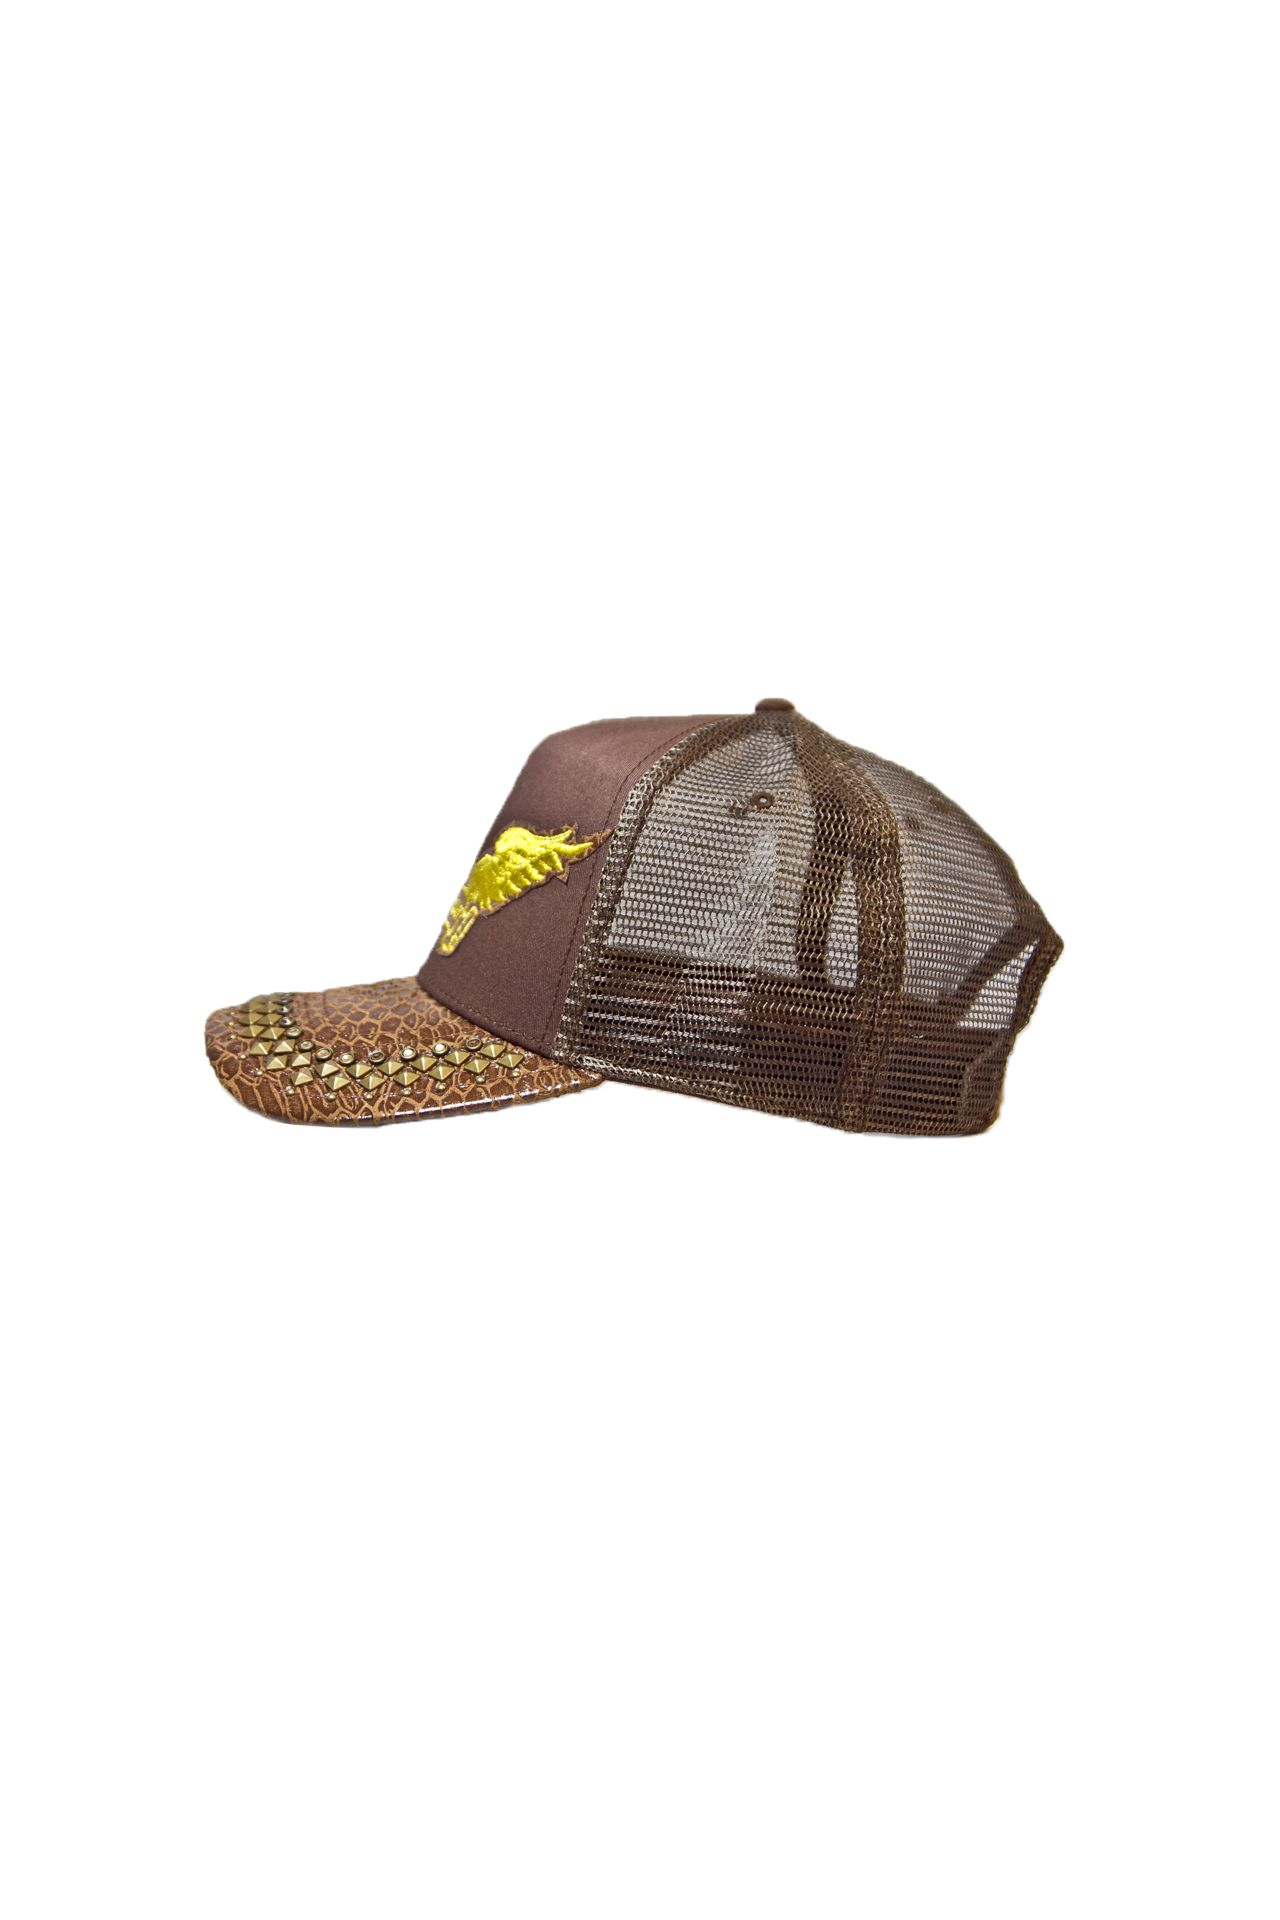 BROWN TWILL CAP WITH PYRAMIDS AND CRYSTALS